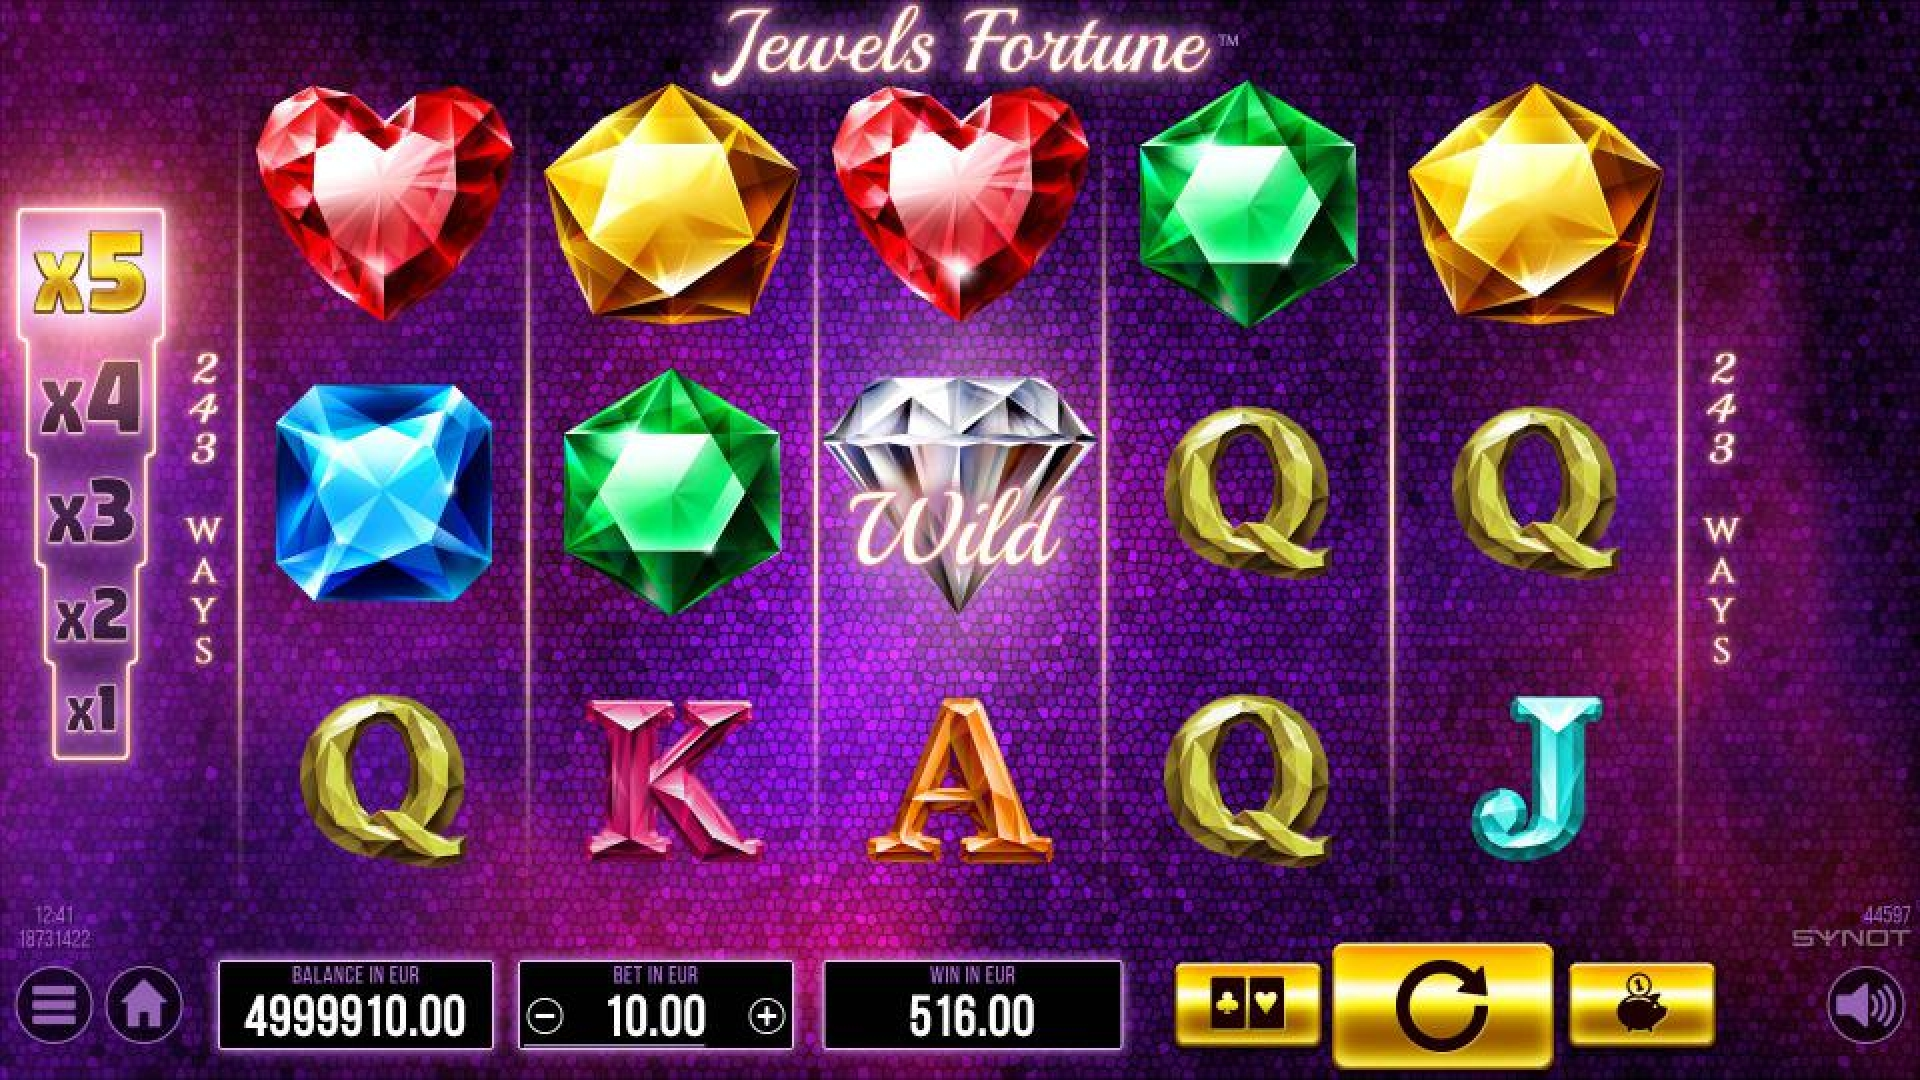 The Jewels Fortune Online Slot Demo Game by Synot Games